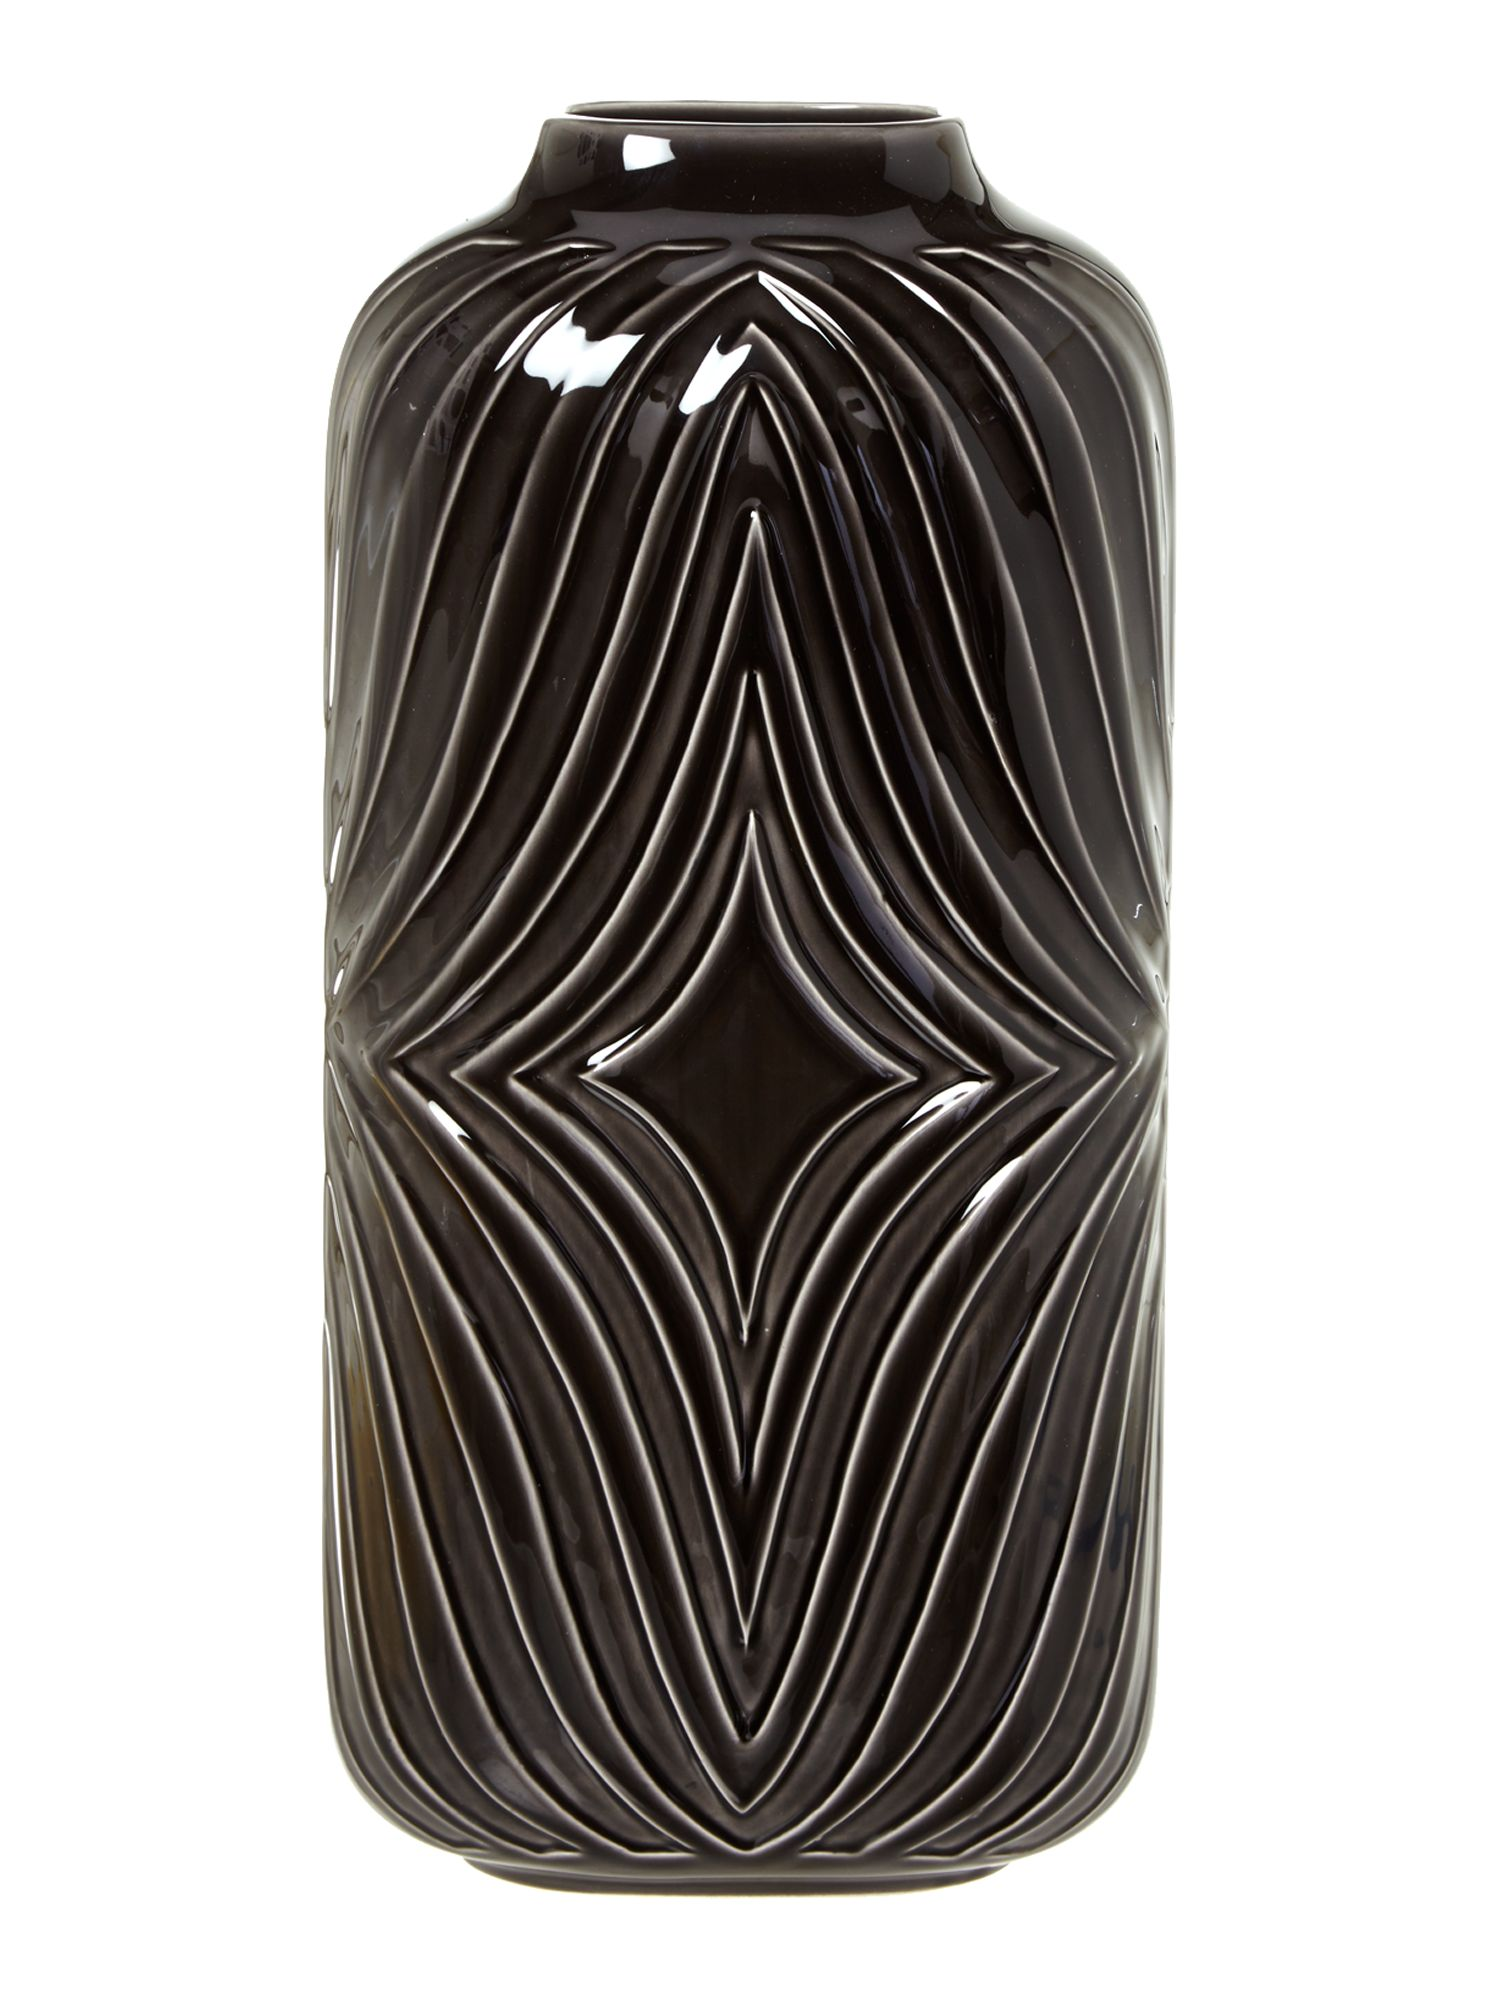 Black ceramic large vase